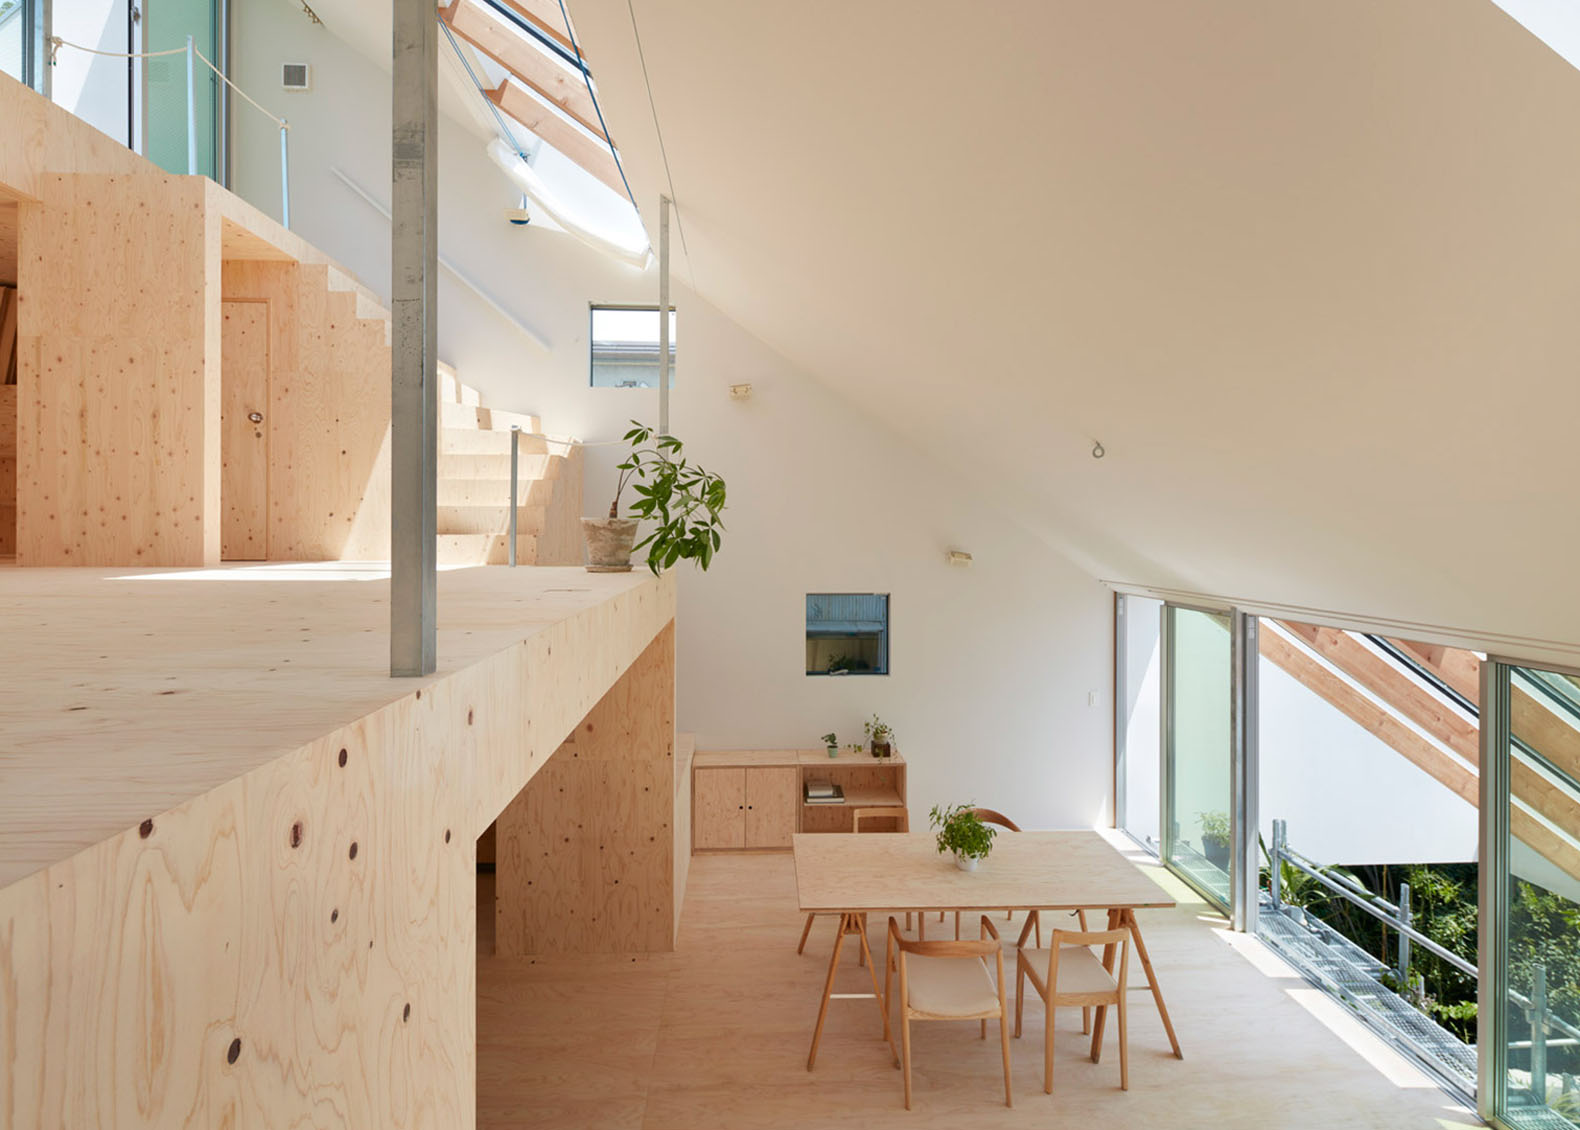 Skylights And Clerestory Windows Bathe The Japanese Re Slope House In Natural Light on Japanese Bedroom Interior Design